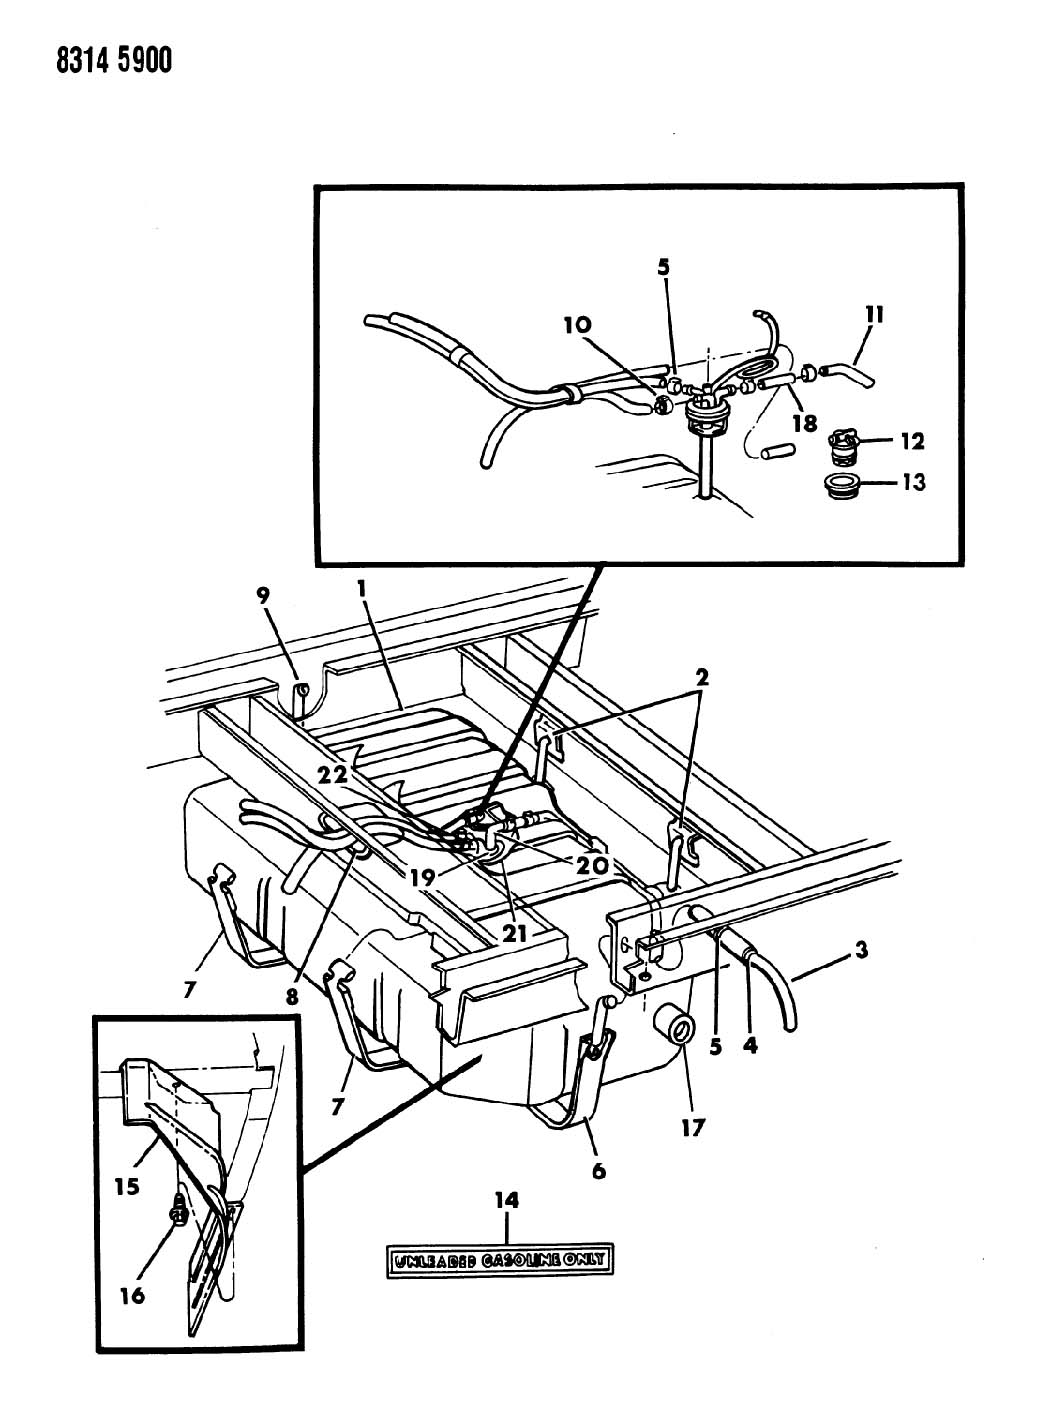 57 Chevy Front Suspension furthermore Dodge Dakota Rack And Pinion Diagram Html besides 1996 Corvette Rear Suspension Replacement together with Jeep Liberty Electrical Diagram Shifter furthermore 1985 Dodge Ram 50 Parts. on p 0900c1528021634d